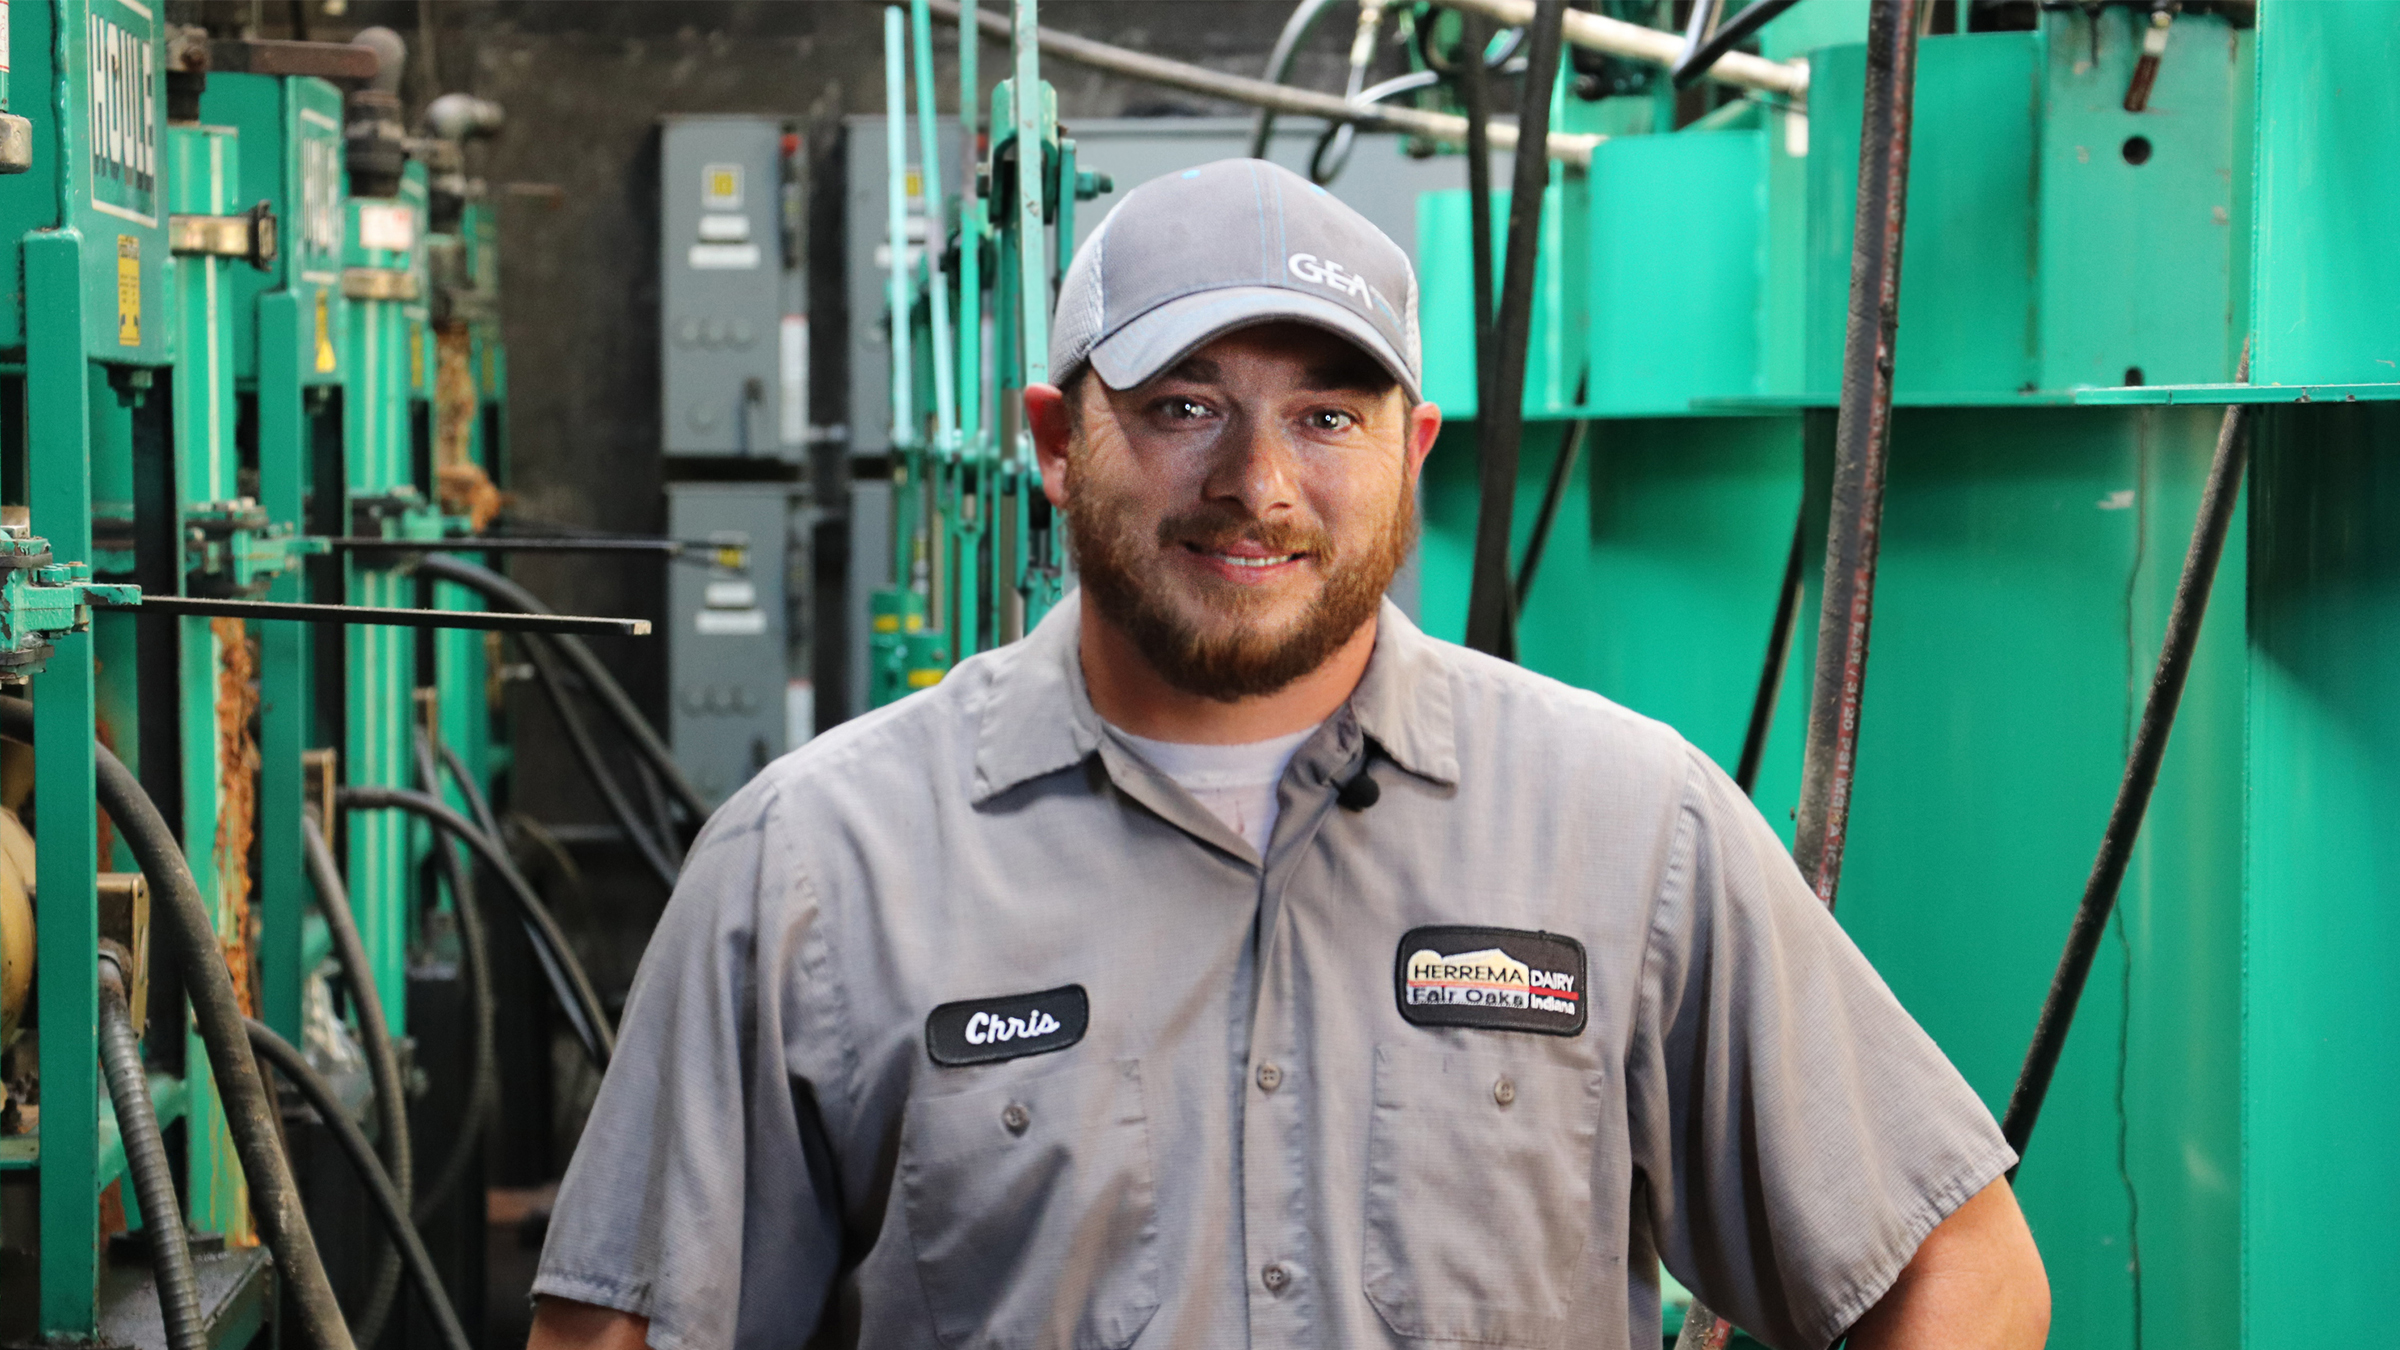 Chris Peck, Maintenance Manager at Herrema Farm in Fair Oaks, Indiana, USA